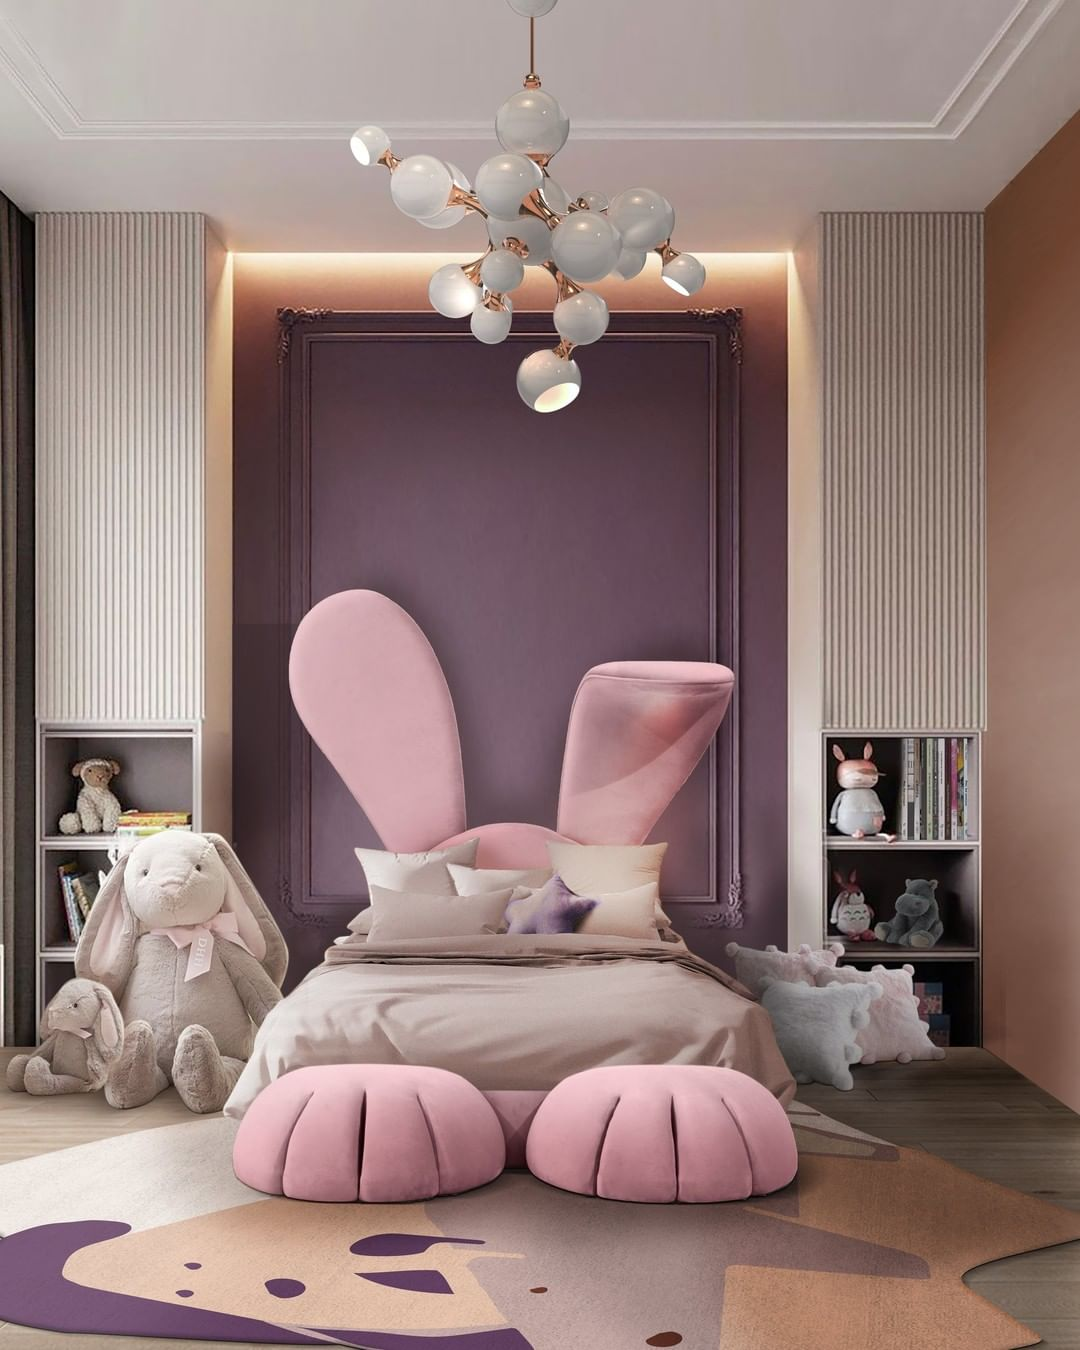 THE IDEAL LIGHTING PIECE FOR A FUN BEDROOM